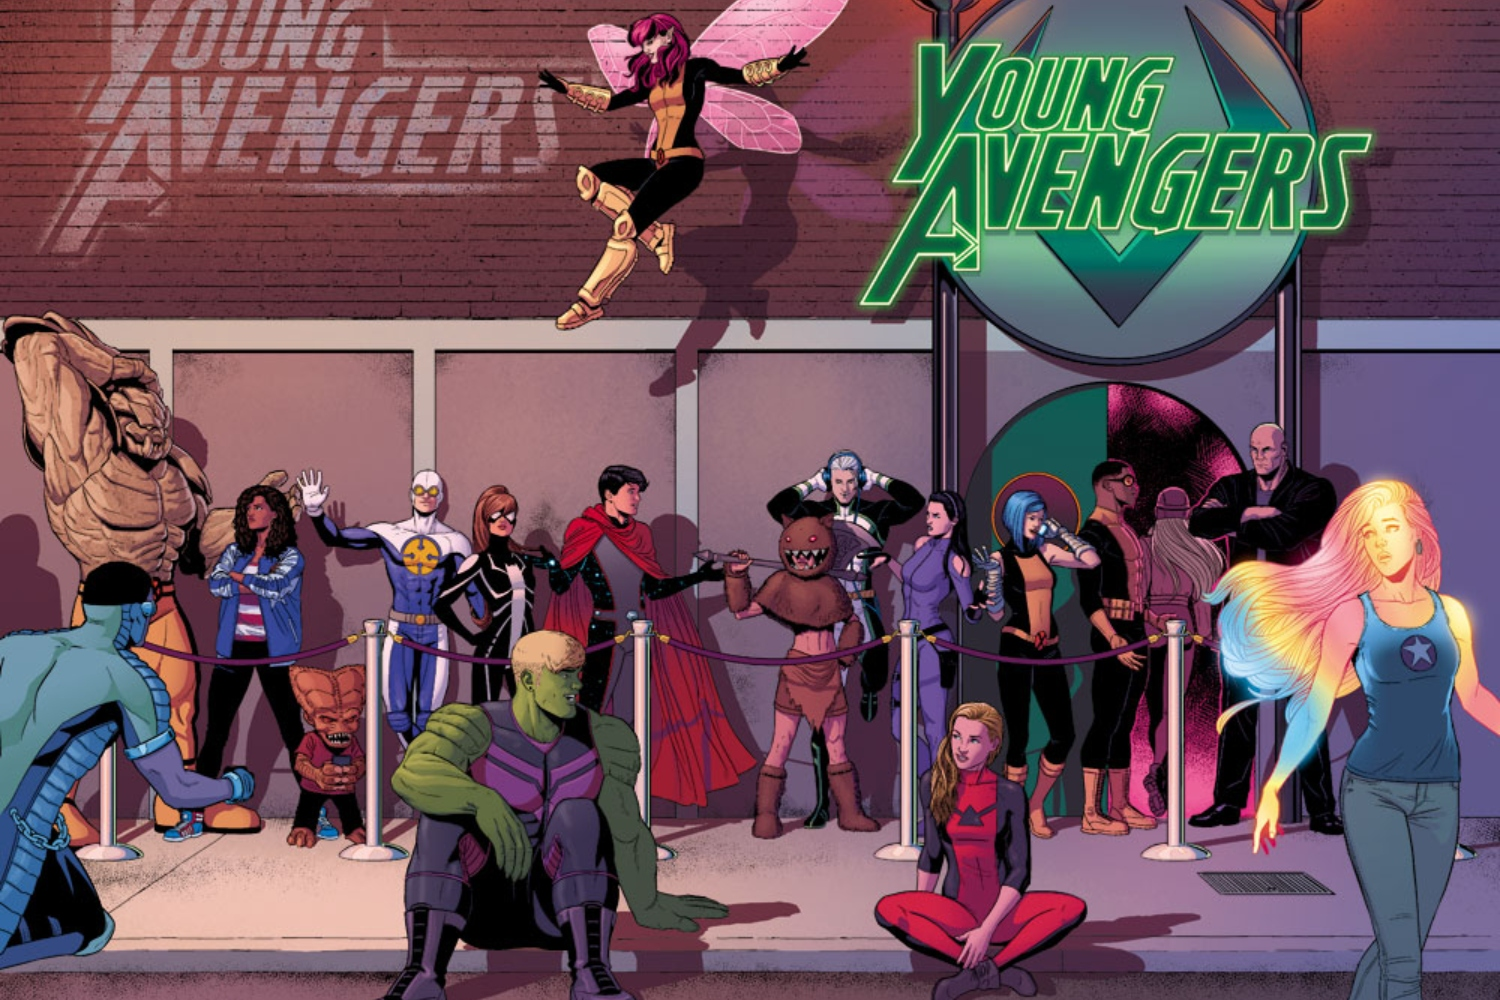 The evolving queerness of 'Young Avengers': Gillen, McKelvie, and the lives of queer youth